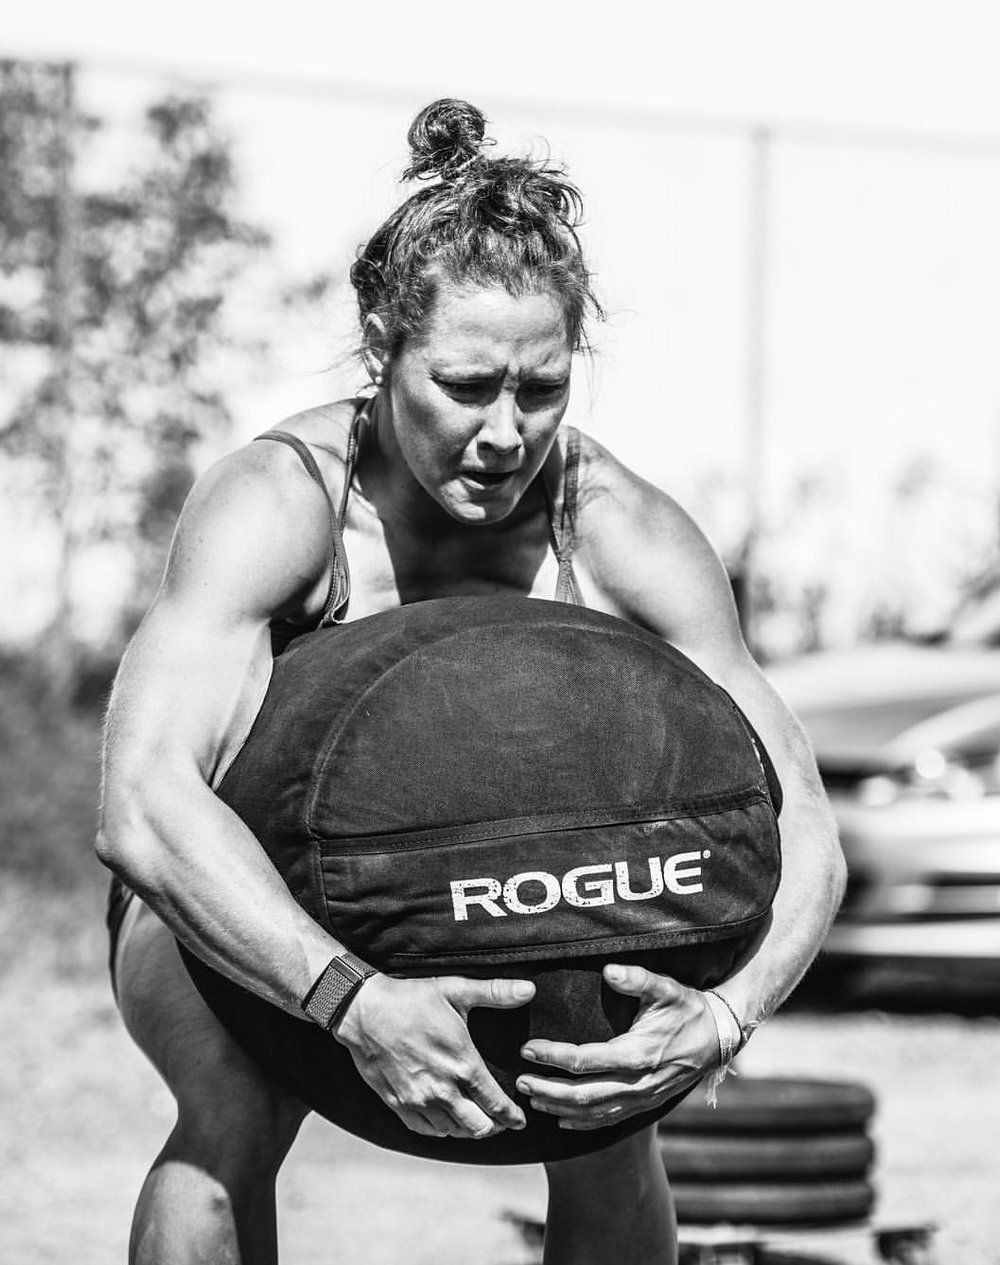 Carol-Ann Reason-Thibault - @reason.thibault_caroCarol-Ann is a four time CrossFit Games Athlete. Check out her feed for some life updates as well as badass posts.